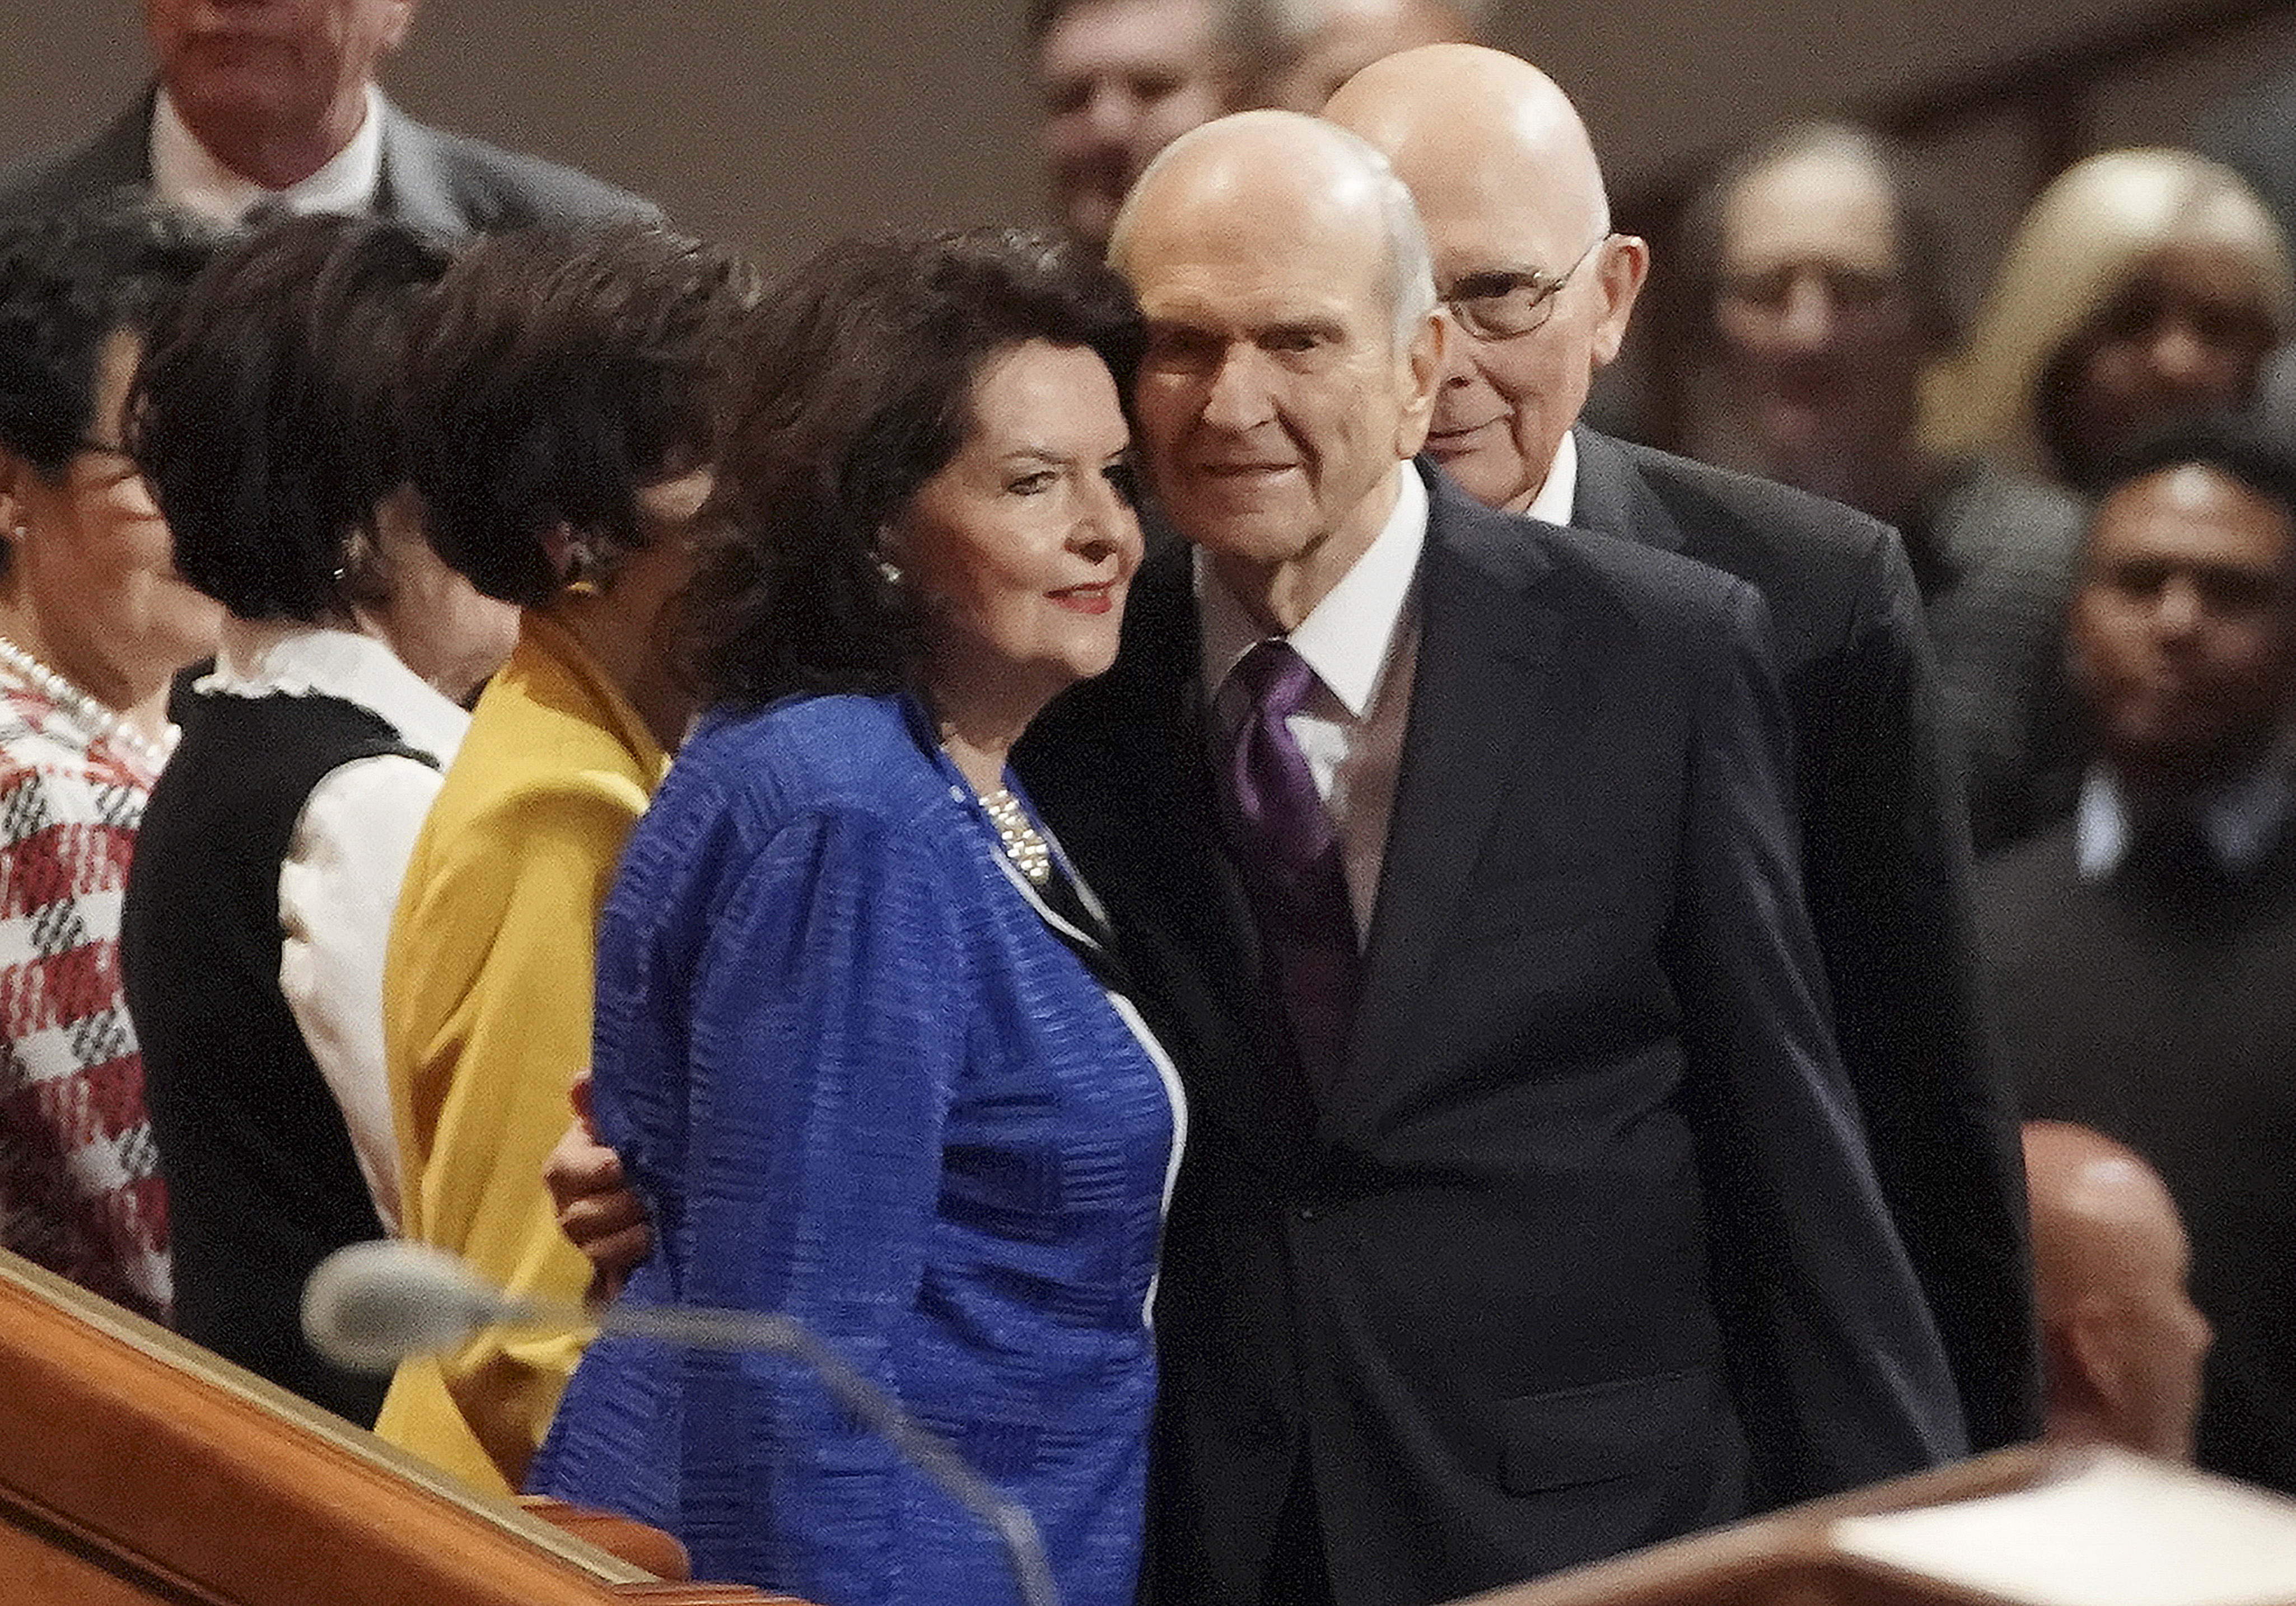 President Russell M. Nelson greets his wife, Sister Wendy Nelson, prior to the Saturday aftertnoon session of the 189th Semiannual General Conference of The Church of Jesus Christ of Latter-day Saints in the Conference Center in Salt Lake City on Saturday, Oct. 5, 2019.